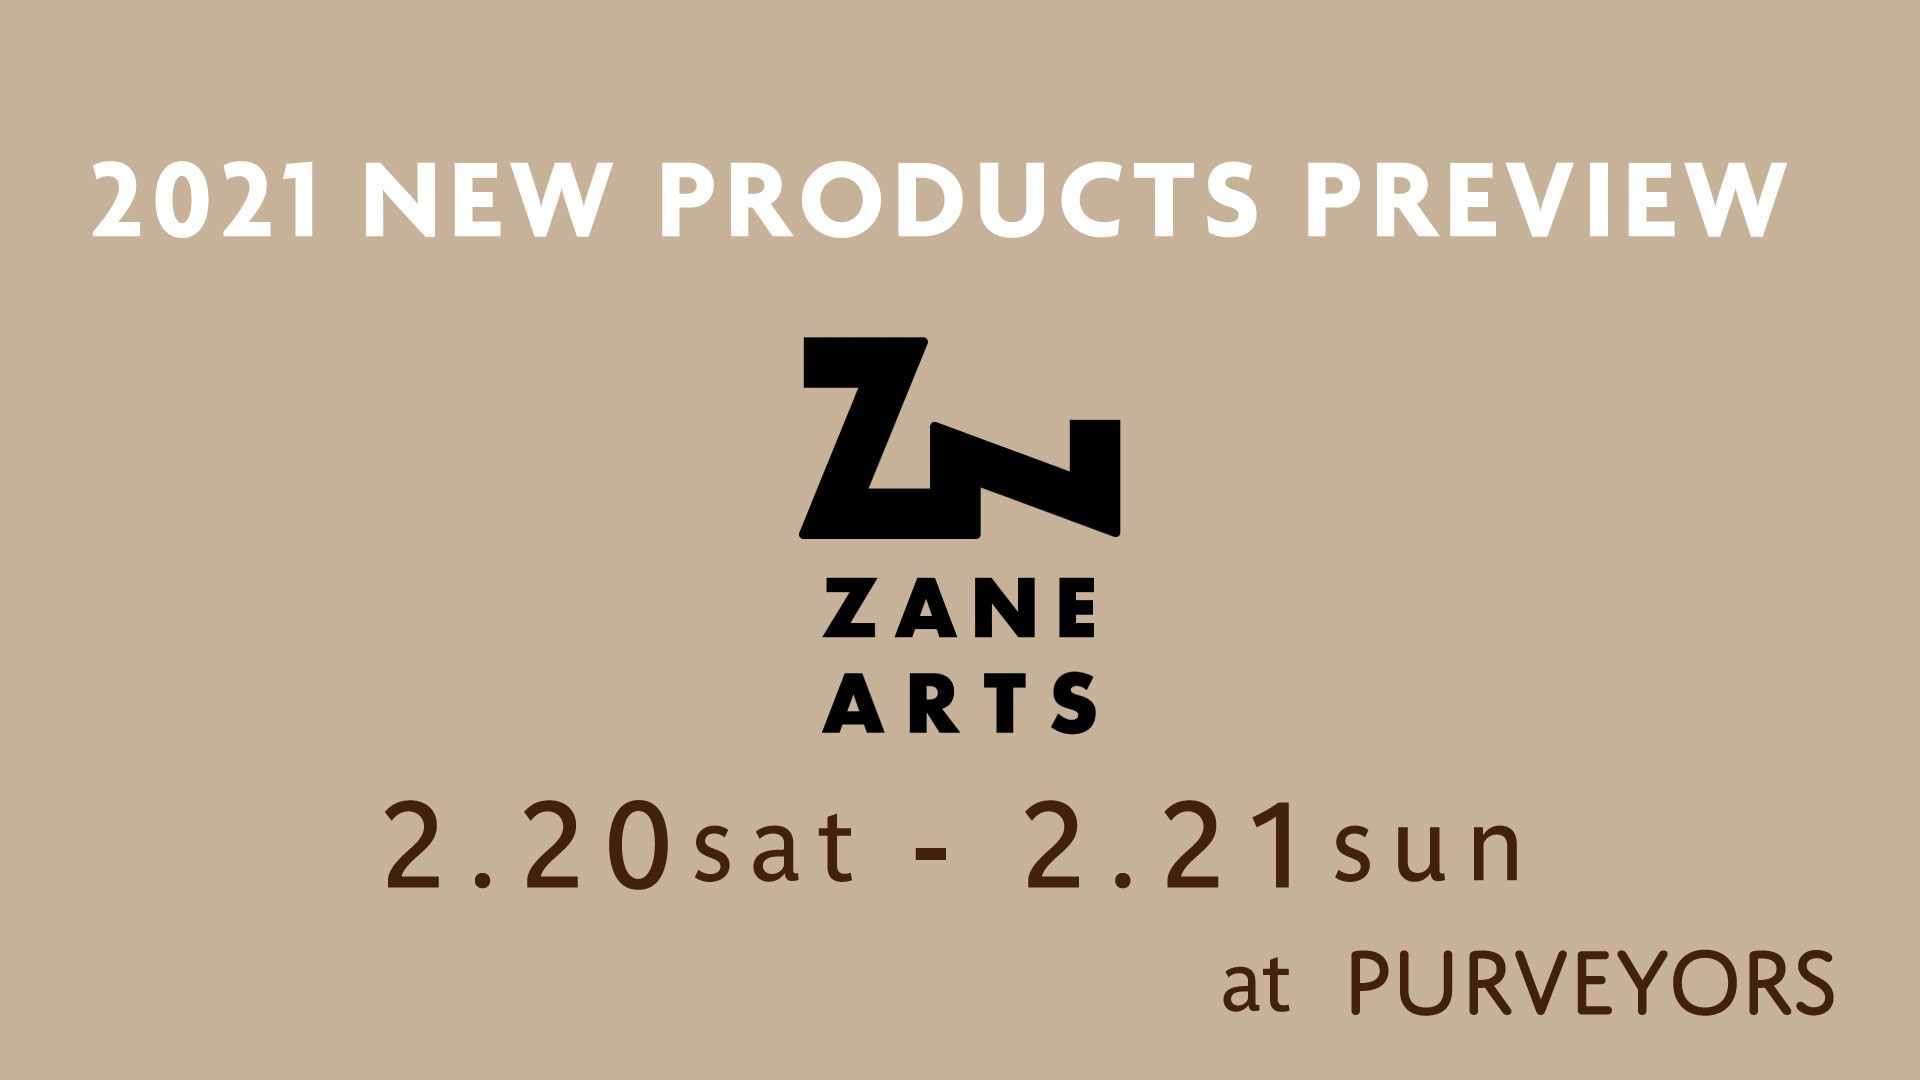 ZANE ARTS 2021 NEW PRODUCTS PREVIEW in Purveyors